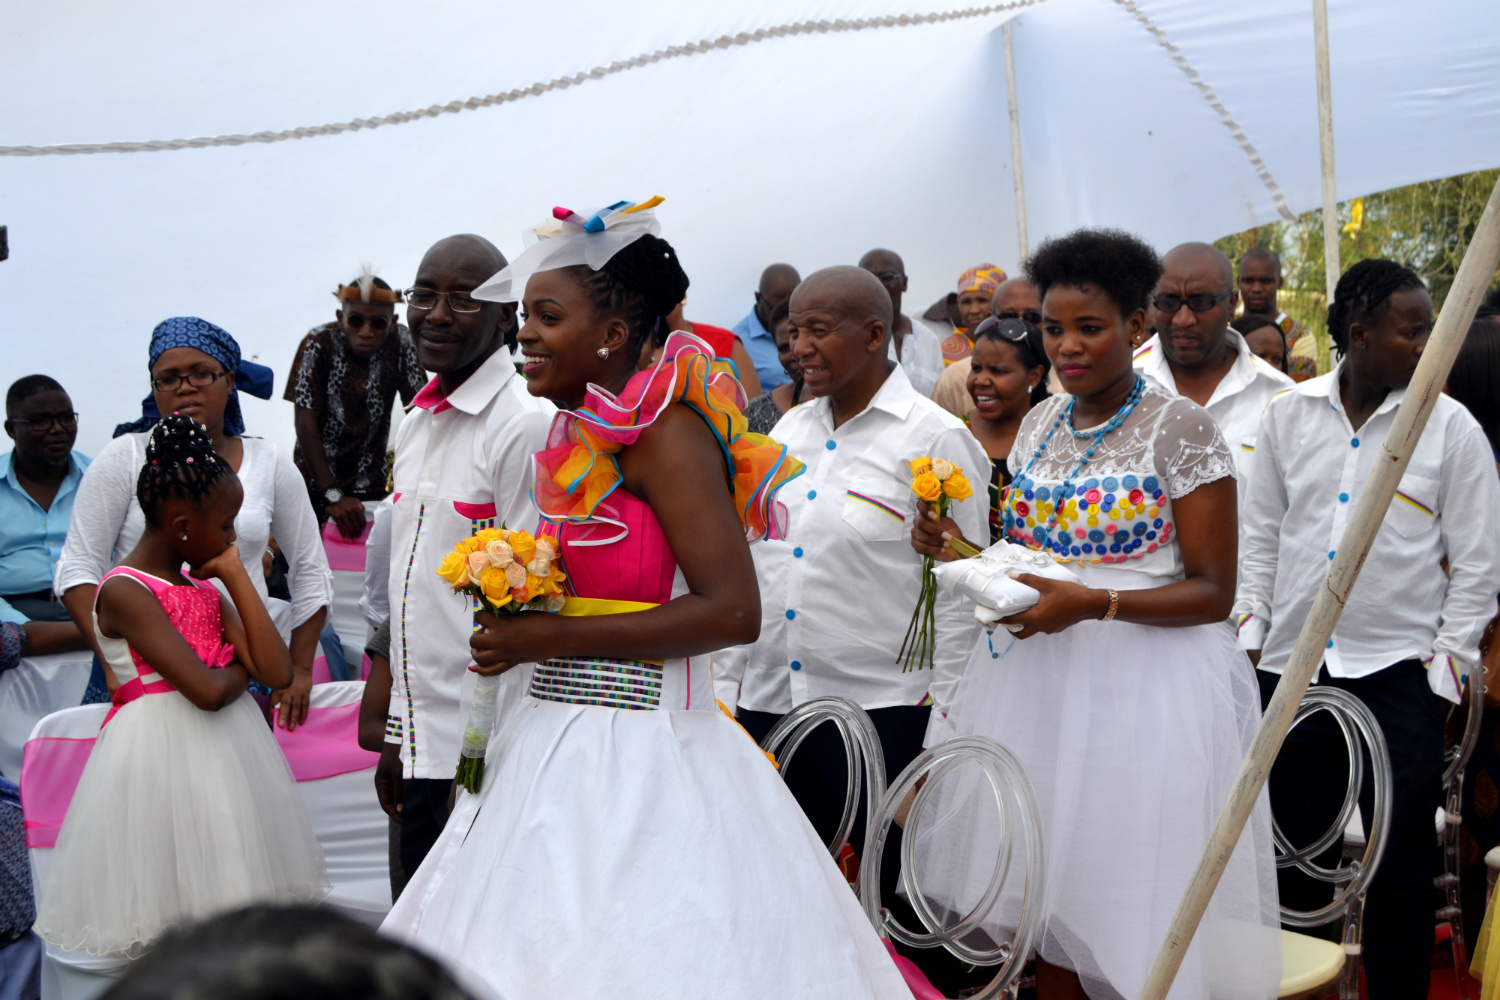 A TRADITIONAL WEDDING AND SOUTH AFRICAN CULTURAL FASHION